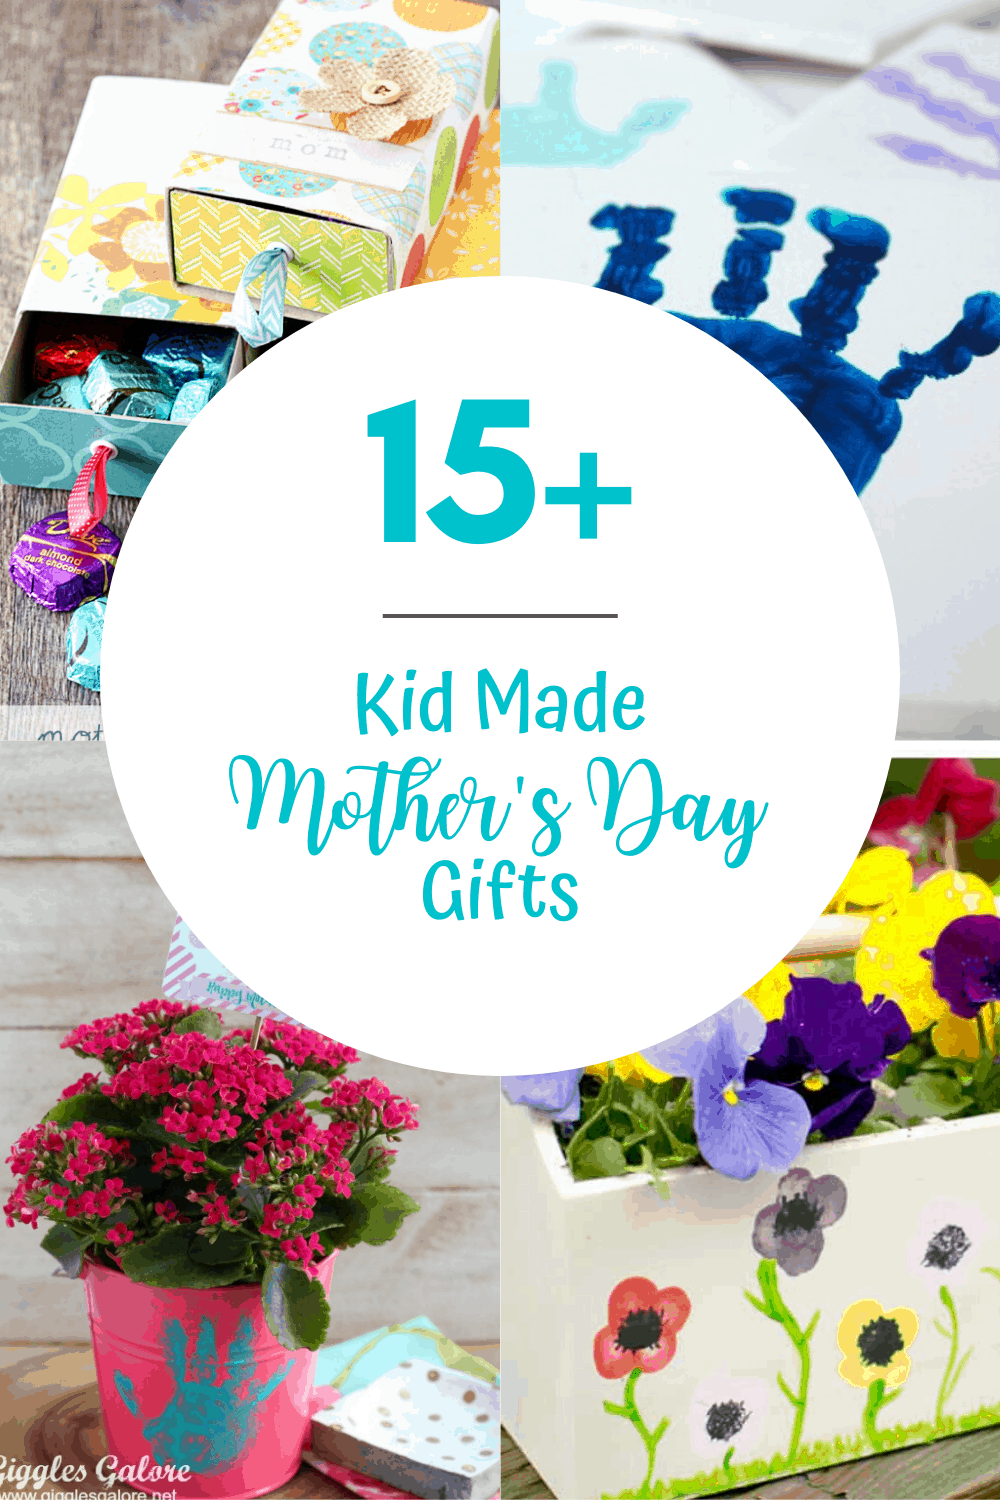 15+ Homemade Mothers Day Gifts from Toddlers